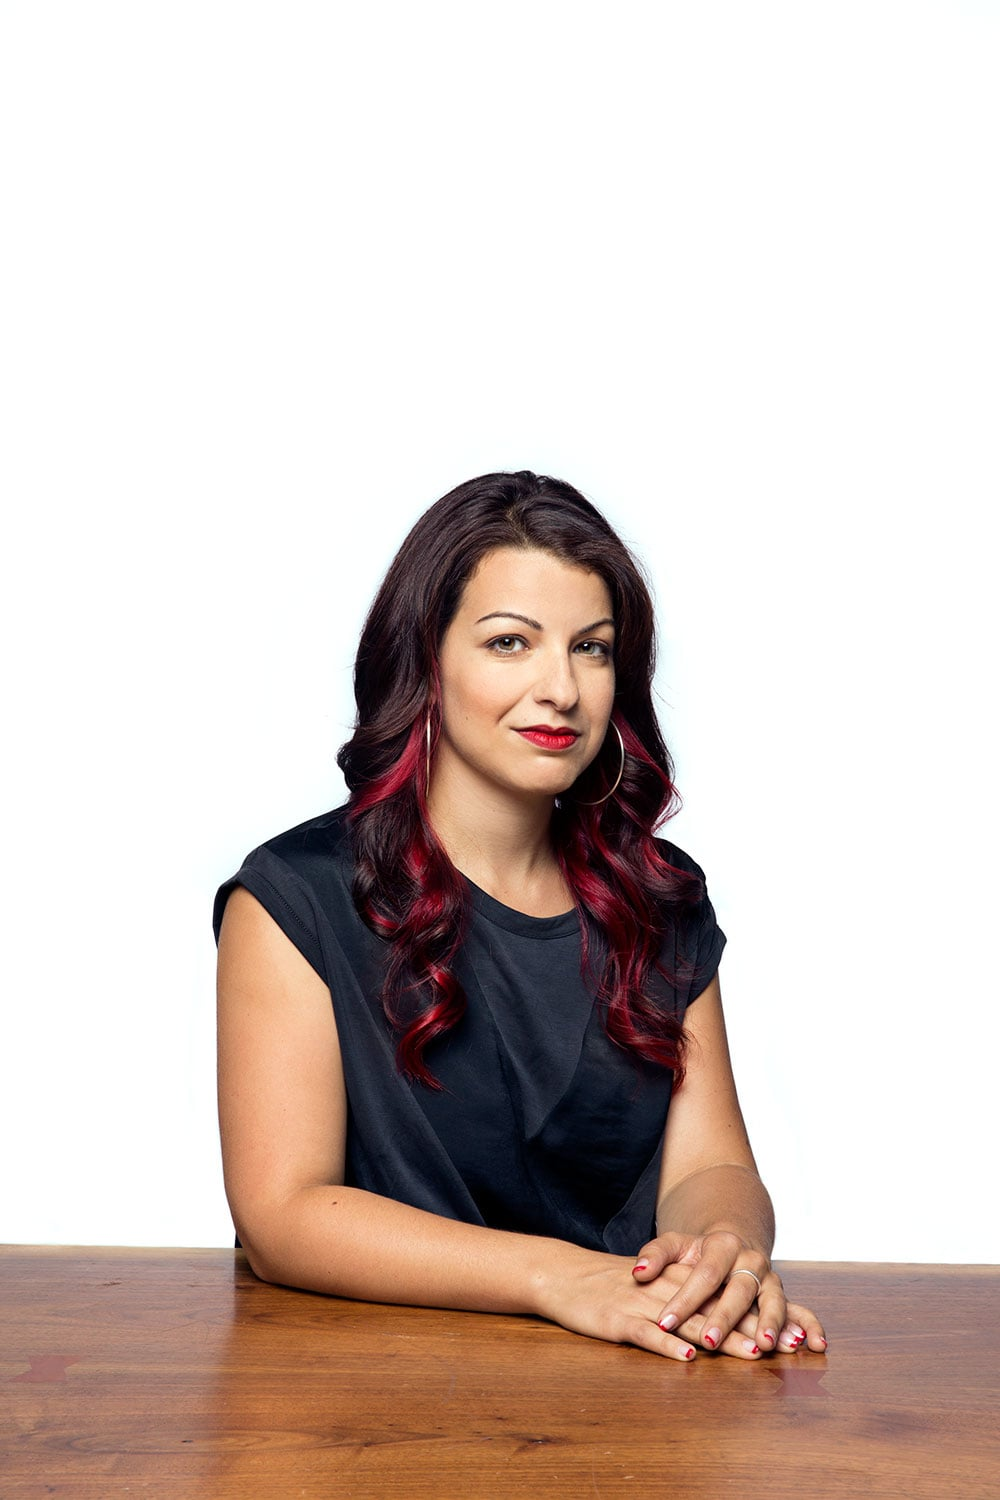 Anita Sarkeesian, of Feminist Frequency for WIRED.